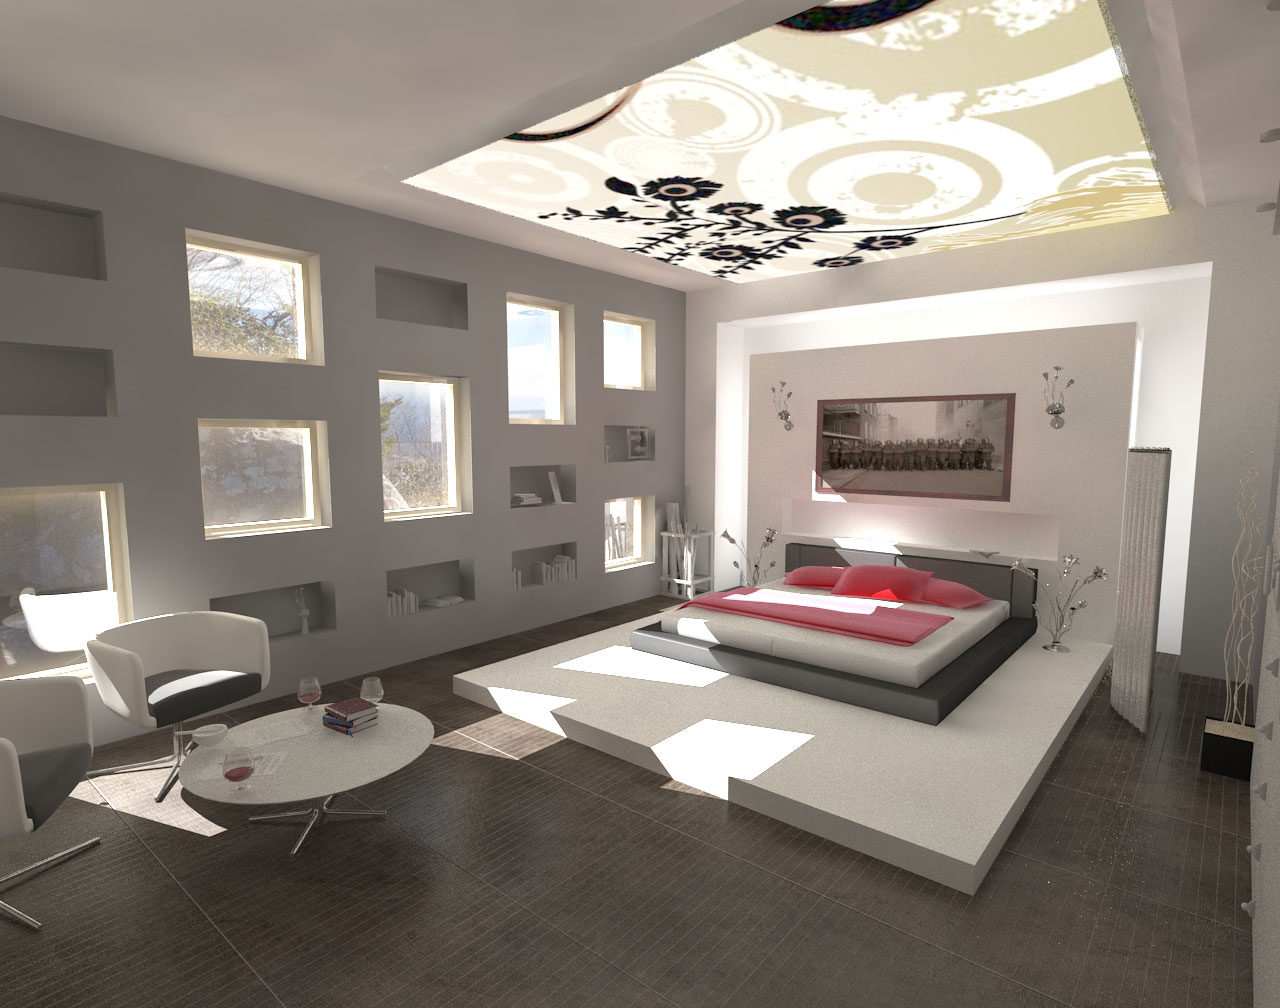 Home furniture modern bedroom lighting for Contemporary bedroom ideas